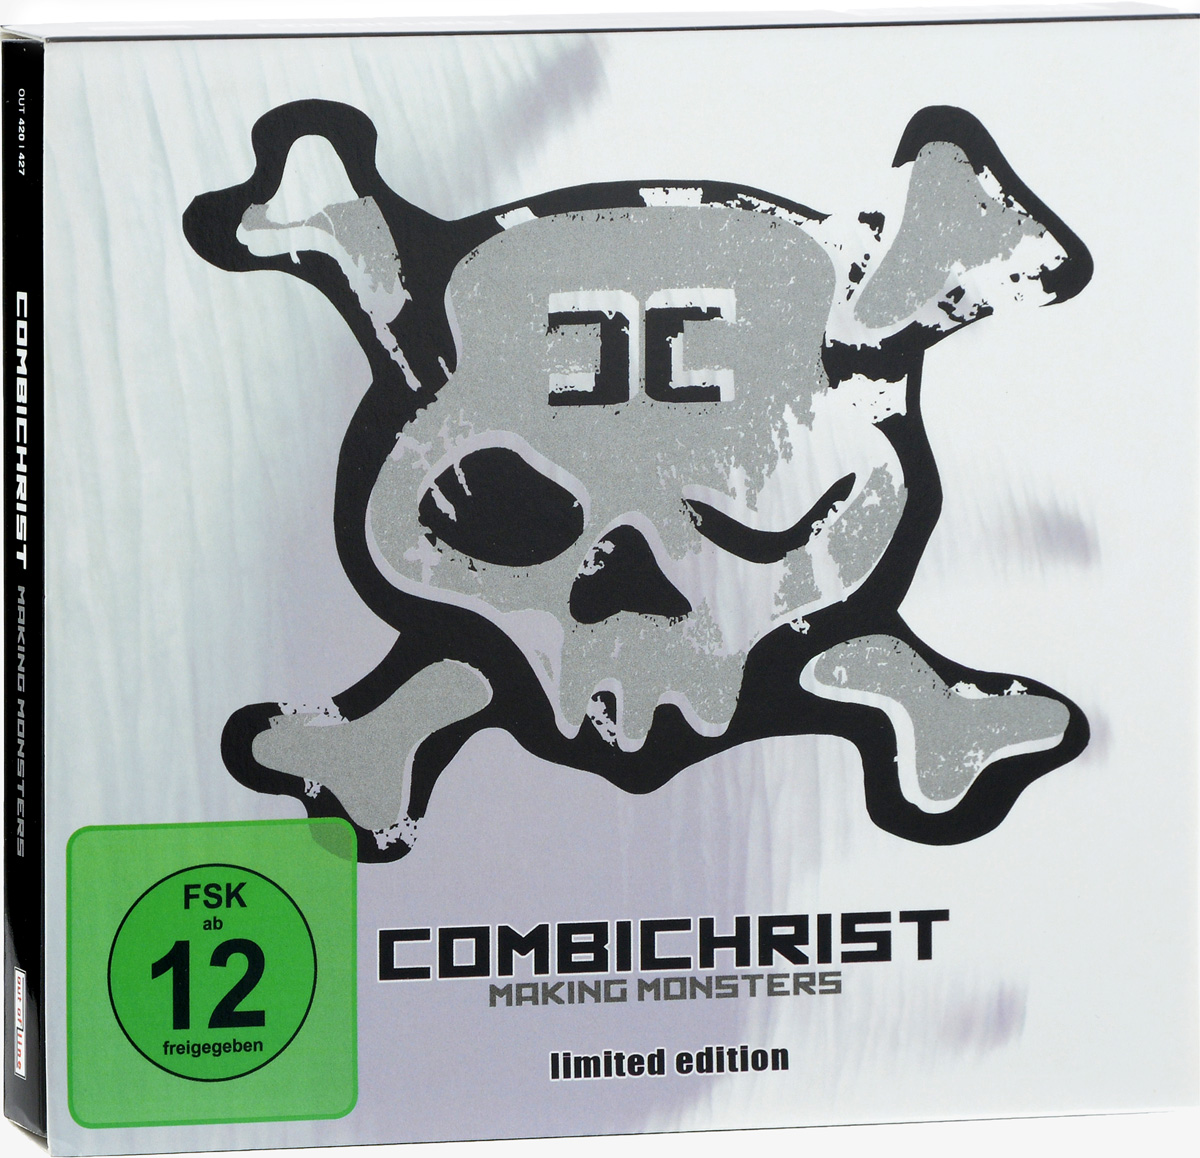 Combichrist Combichrist. Making Monsters. Limited Edition (CD + DVD)